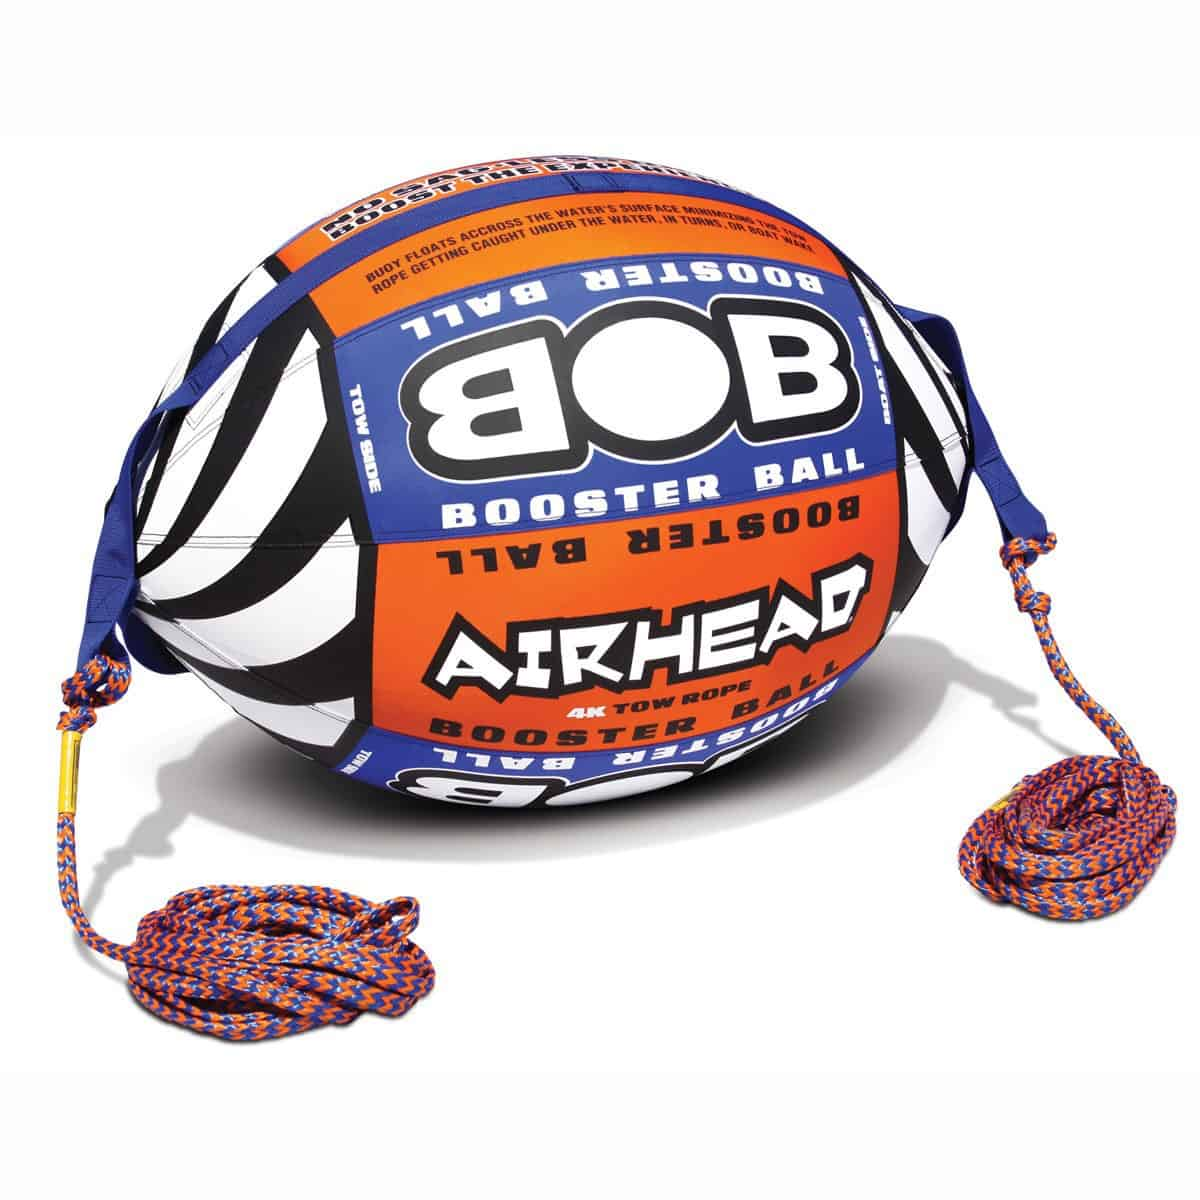 NEW 2018 Airhead BOB Booster ball - Shipwreck Marine